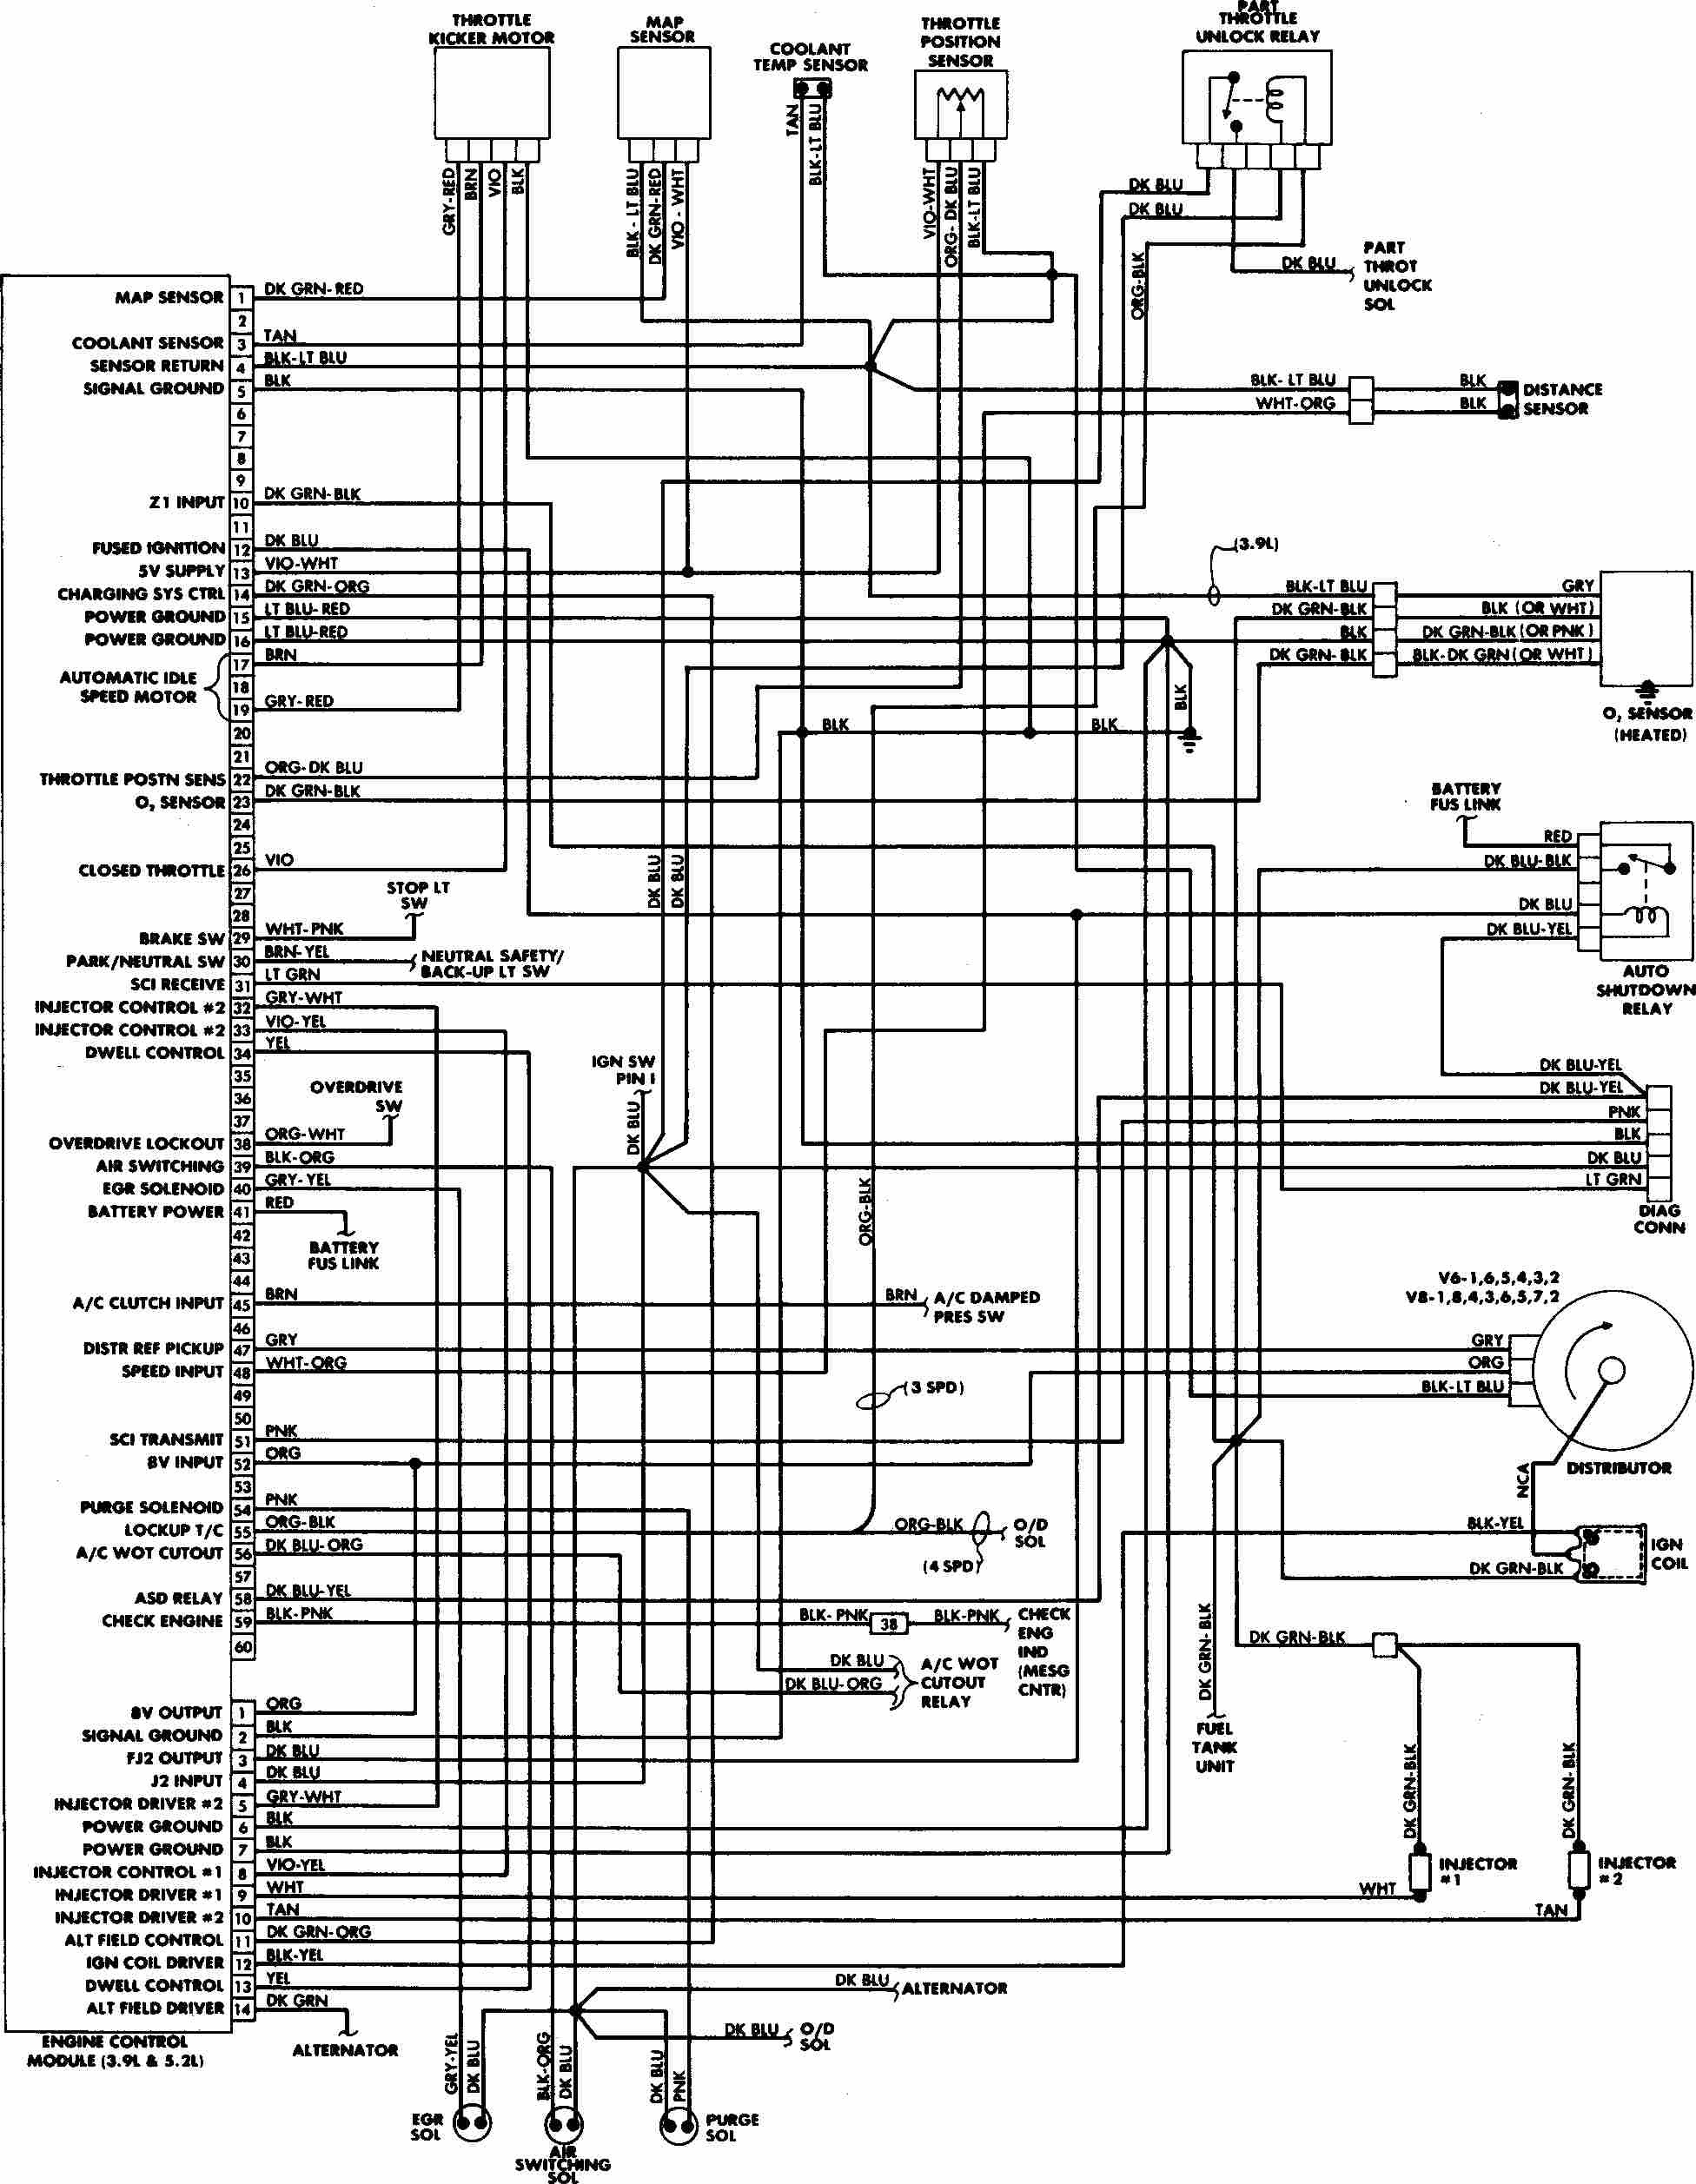 dodge van brown wiring diagram database. Black Bedroom Furniture Sets. Home Design Ideas